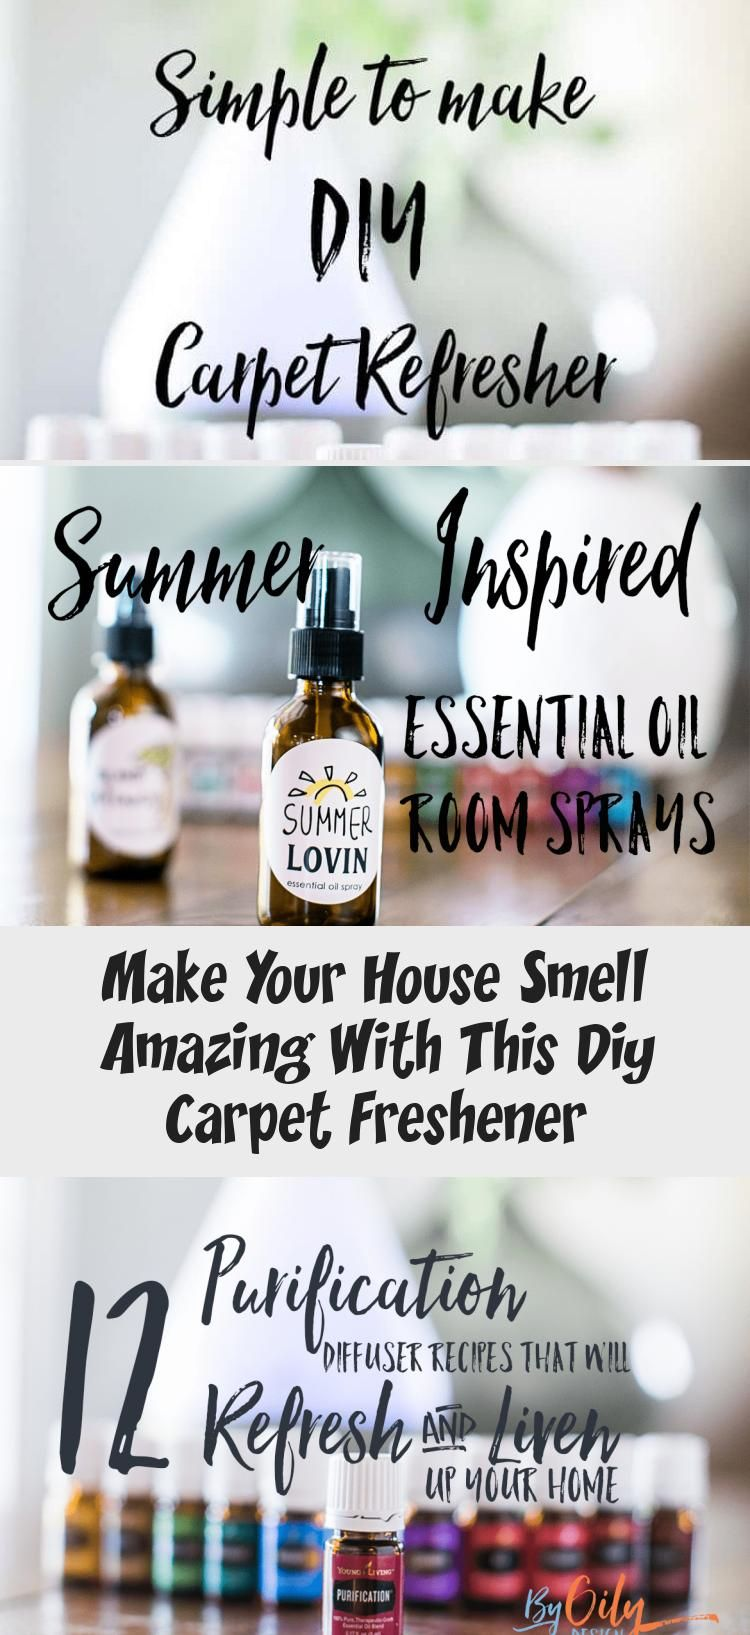 Neutralize house smells with this DIY Carpet deodorizer